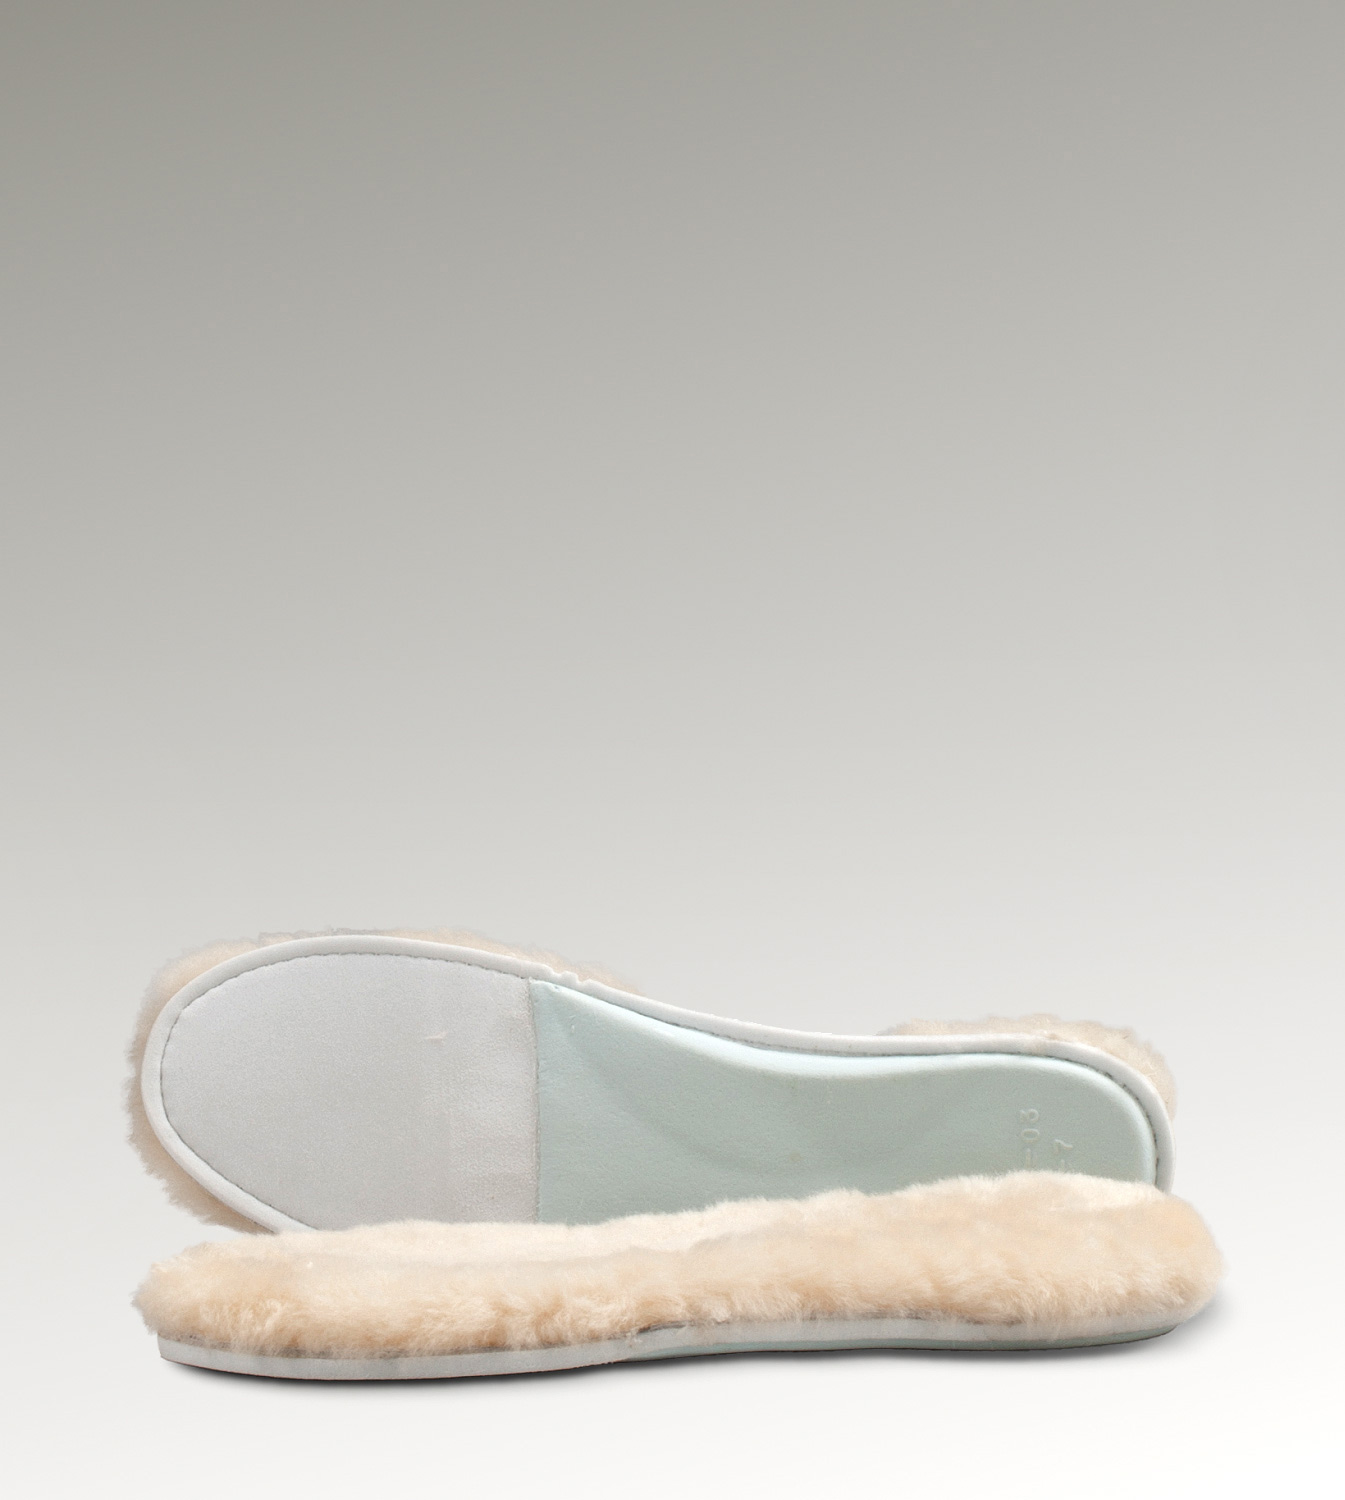 UGG Insole 9501 White Insole